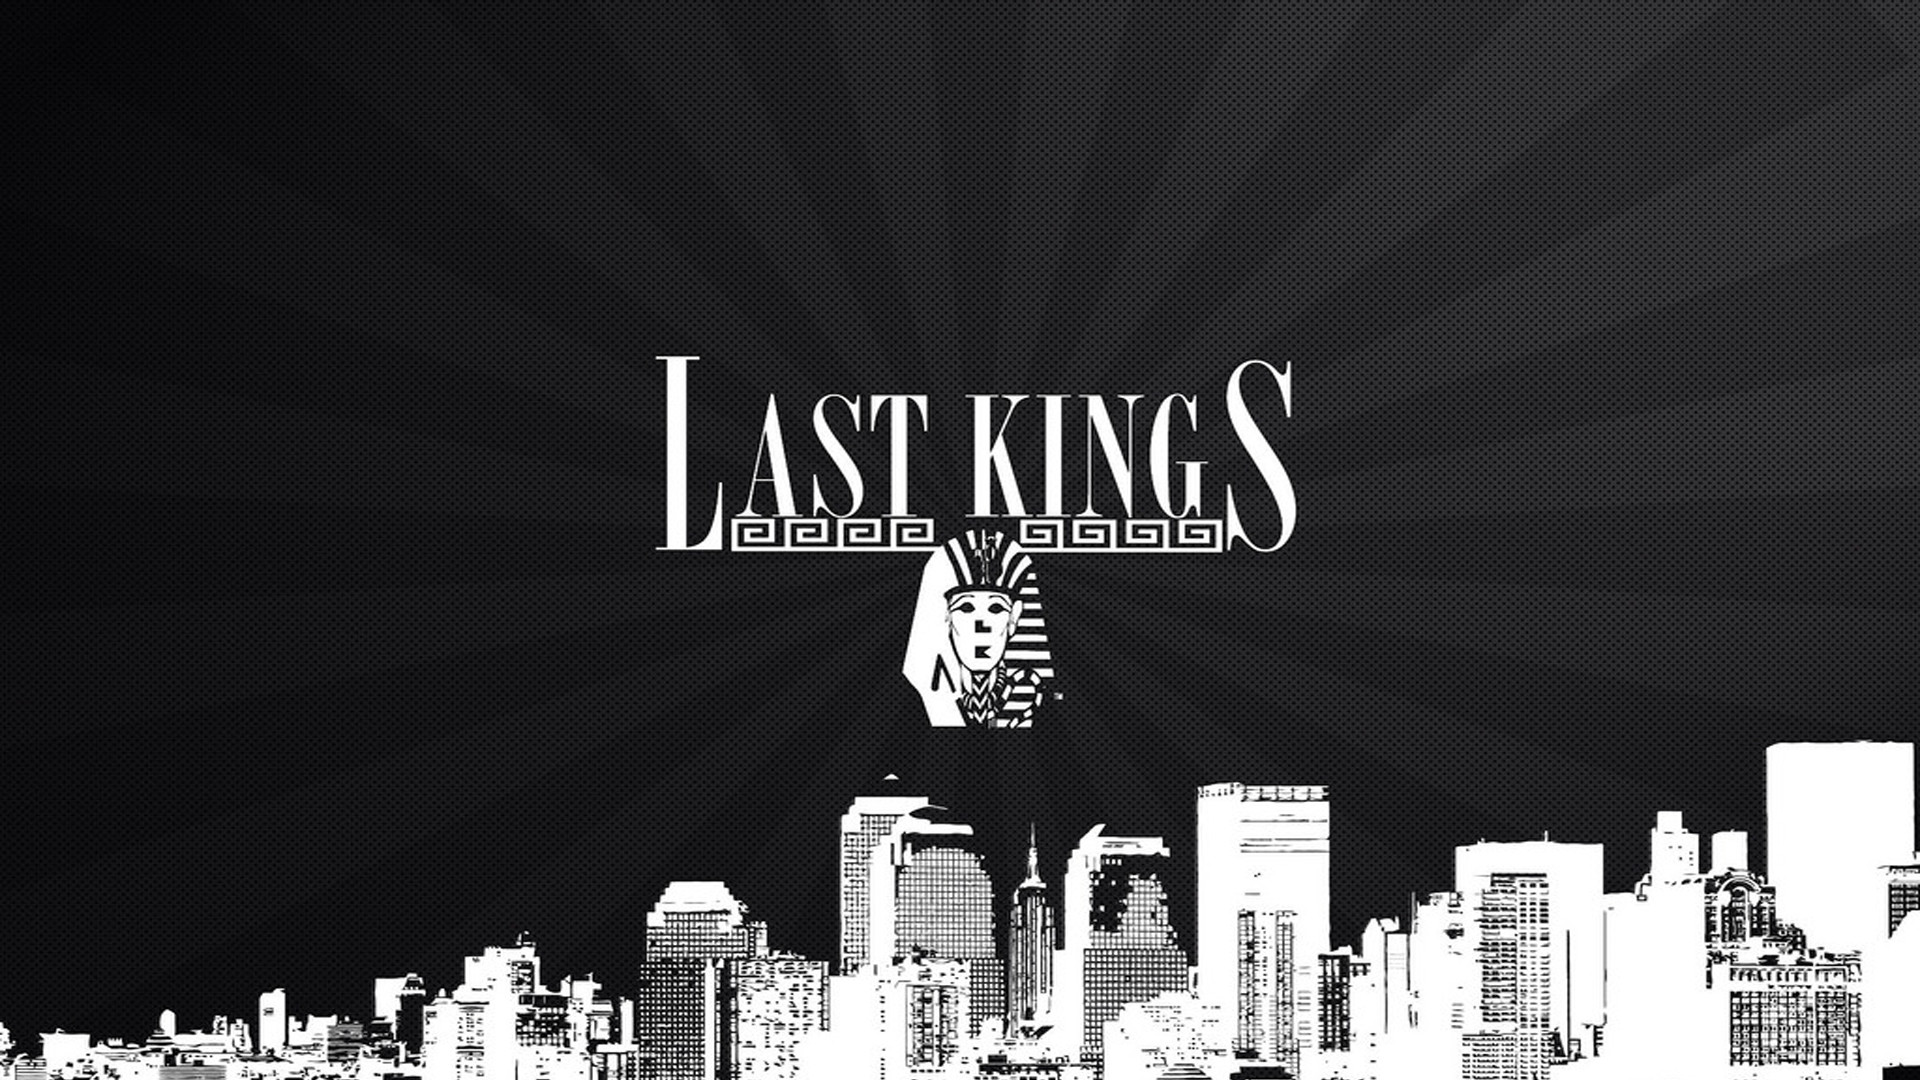 1920x1080 ... Last Kings Wallpaper with Logo on City